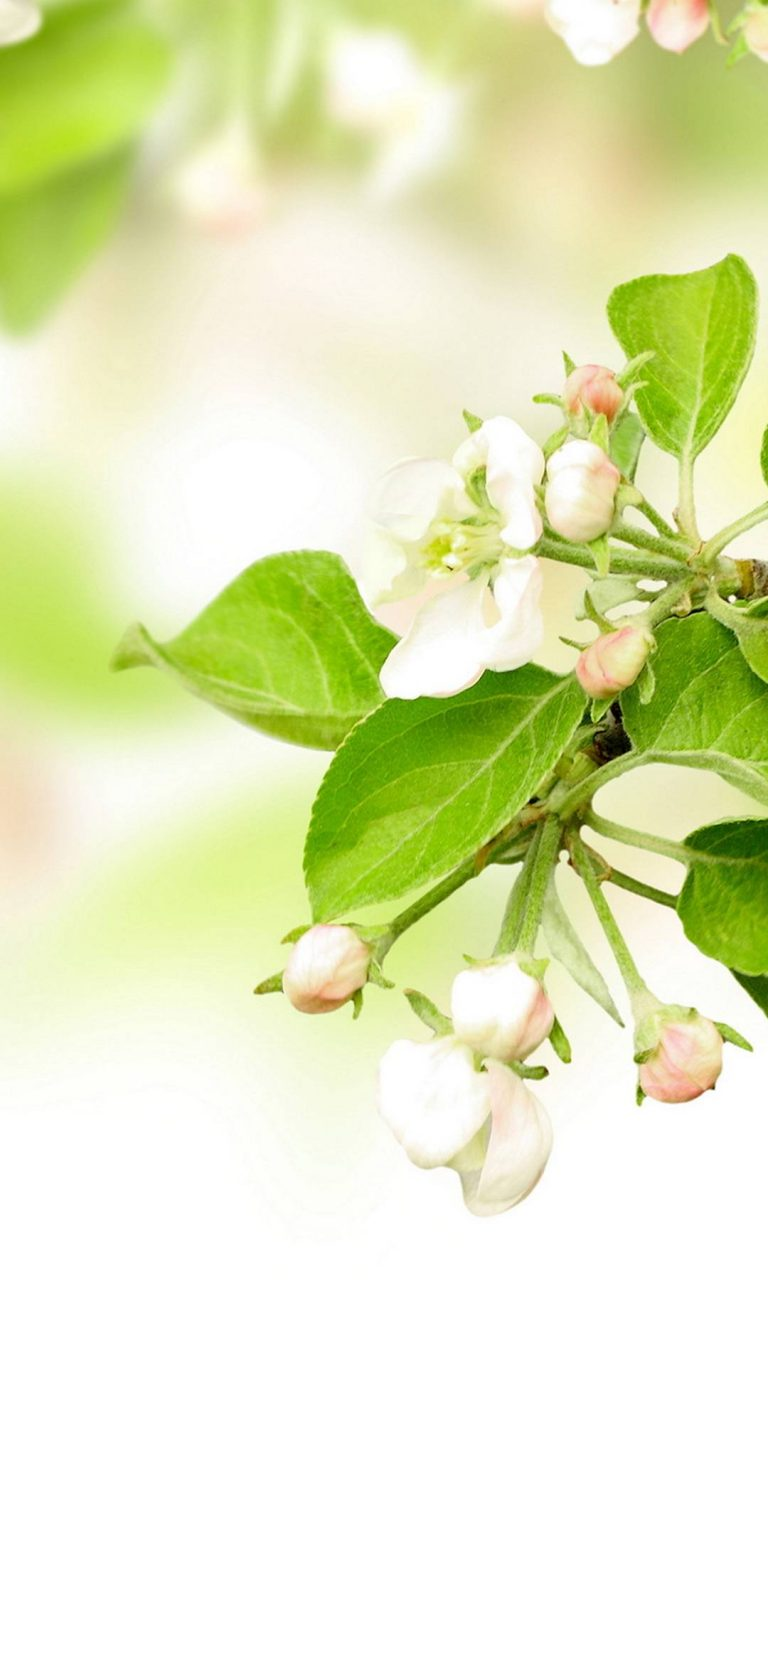 Leaves Spring Flowers Apples 1080x2340 768x1664